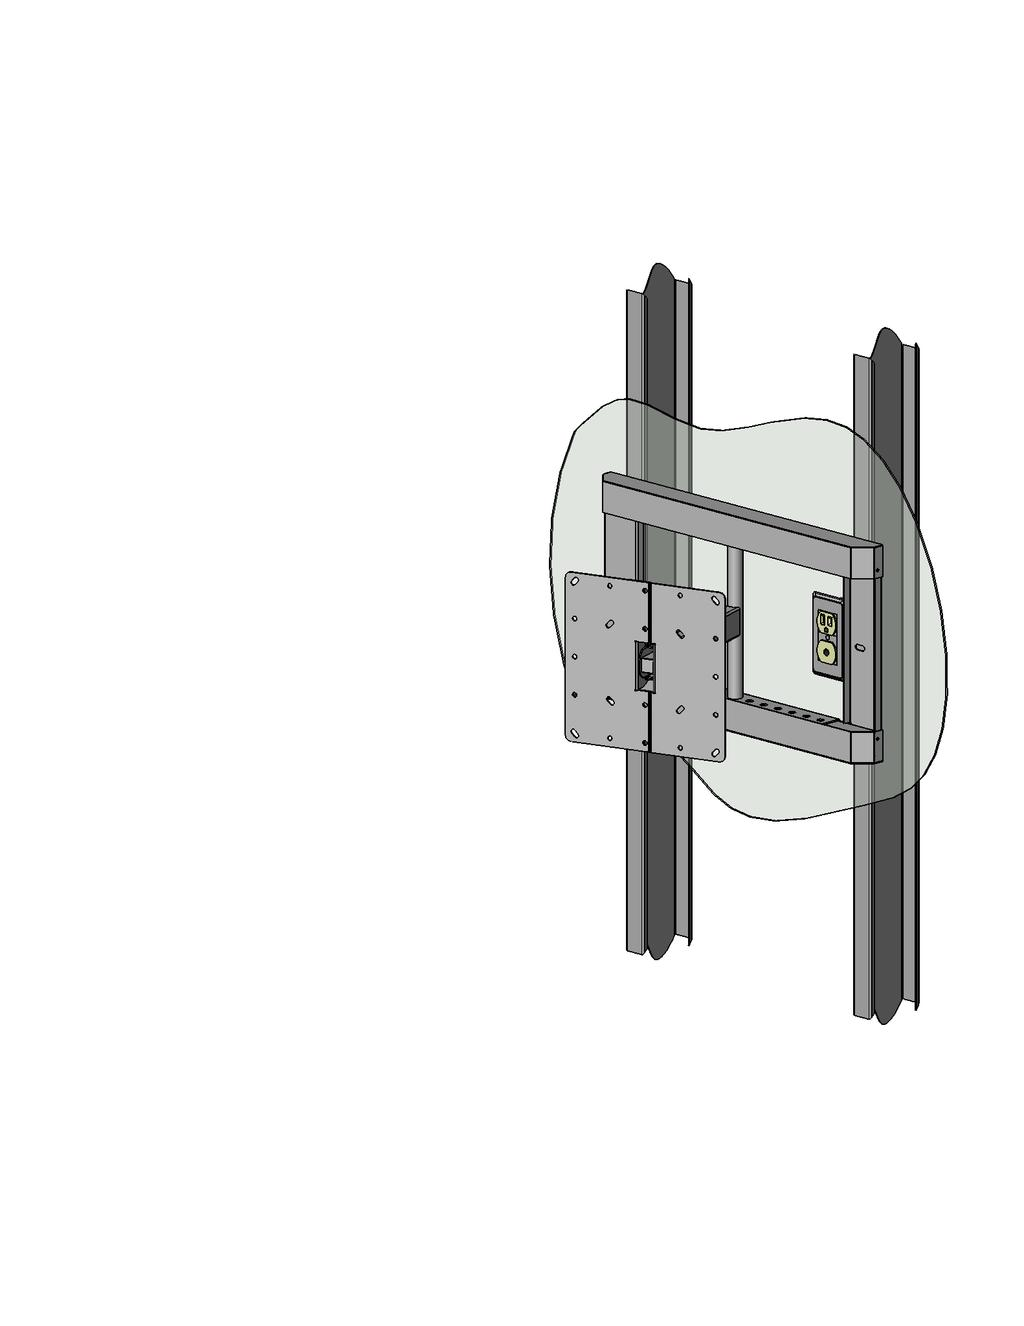 "Page 1 of 6 LC200DS1 Double Stud Articulating Wall Mount for Flat Panel Screens up to 32"" with up to 200mm x 200mm VESA Mounting Patterns A multi-position dual articulating arm for flat screens up to"